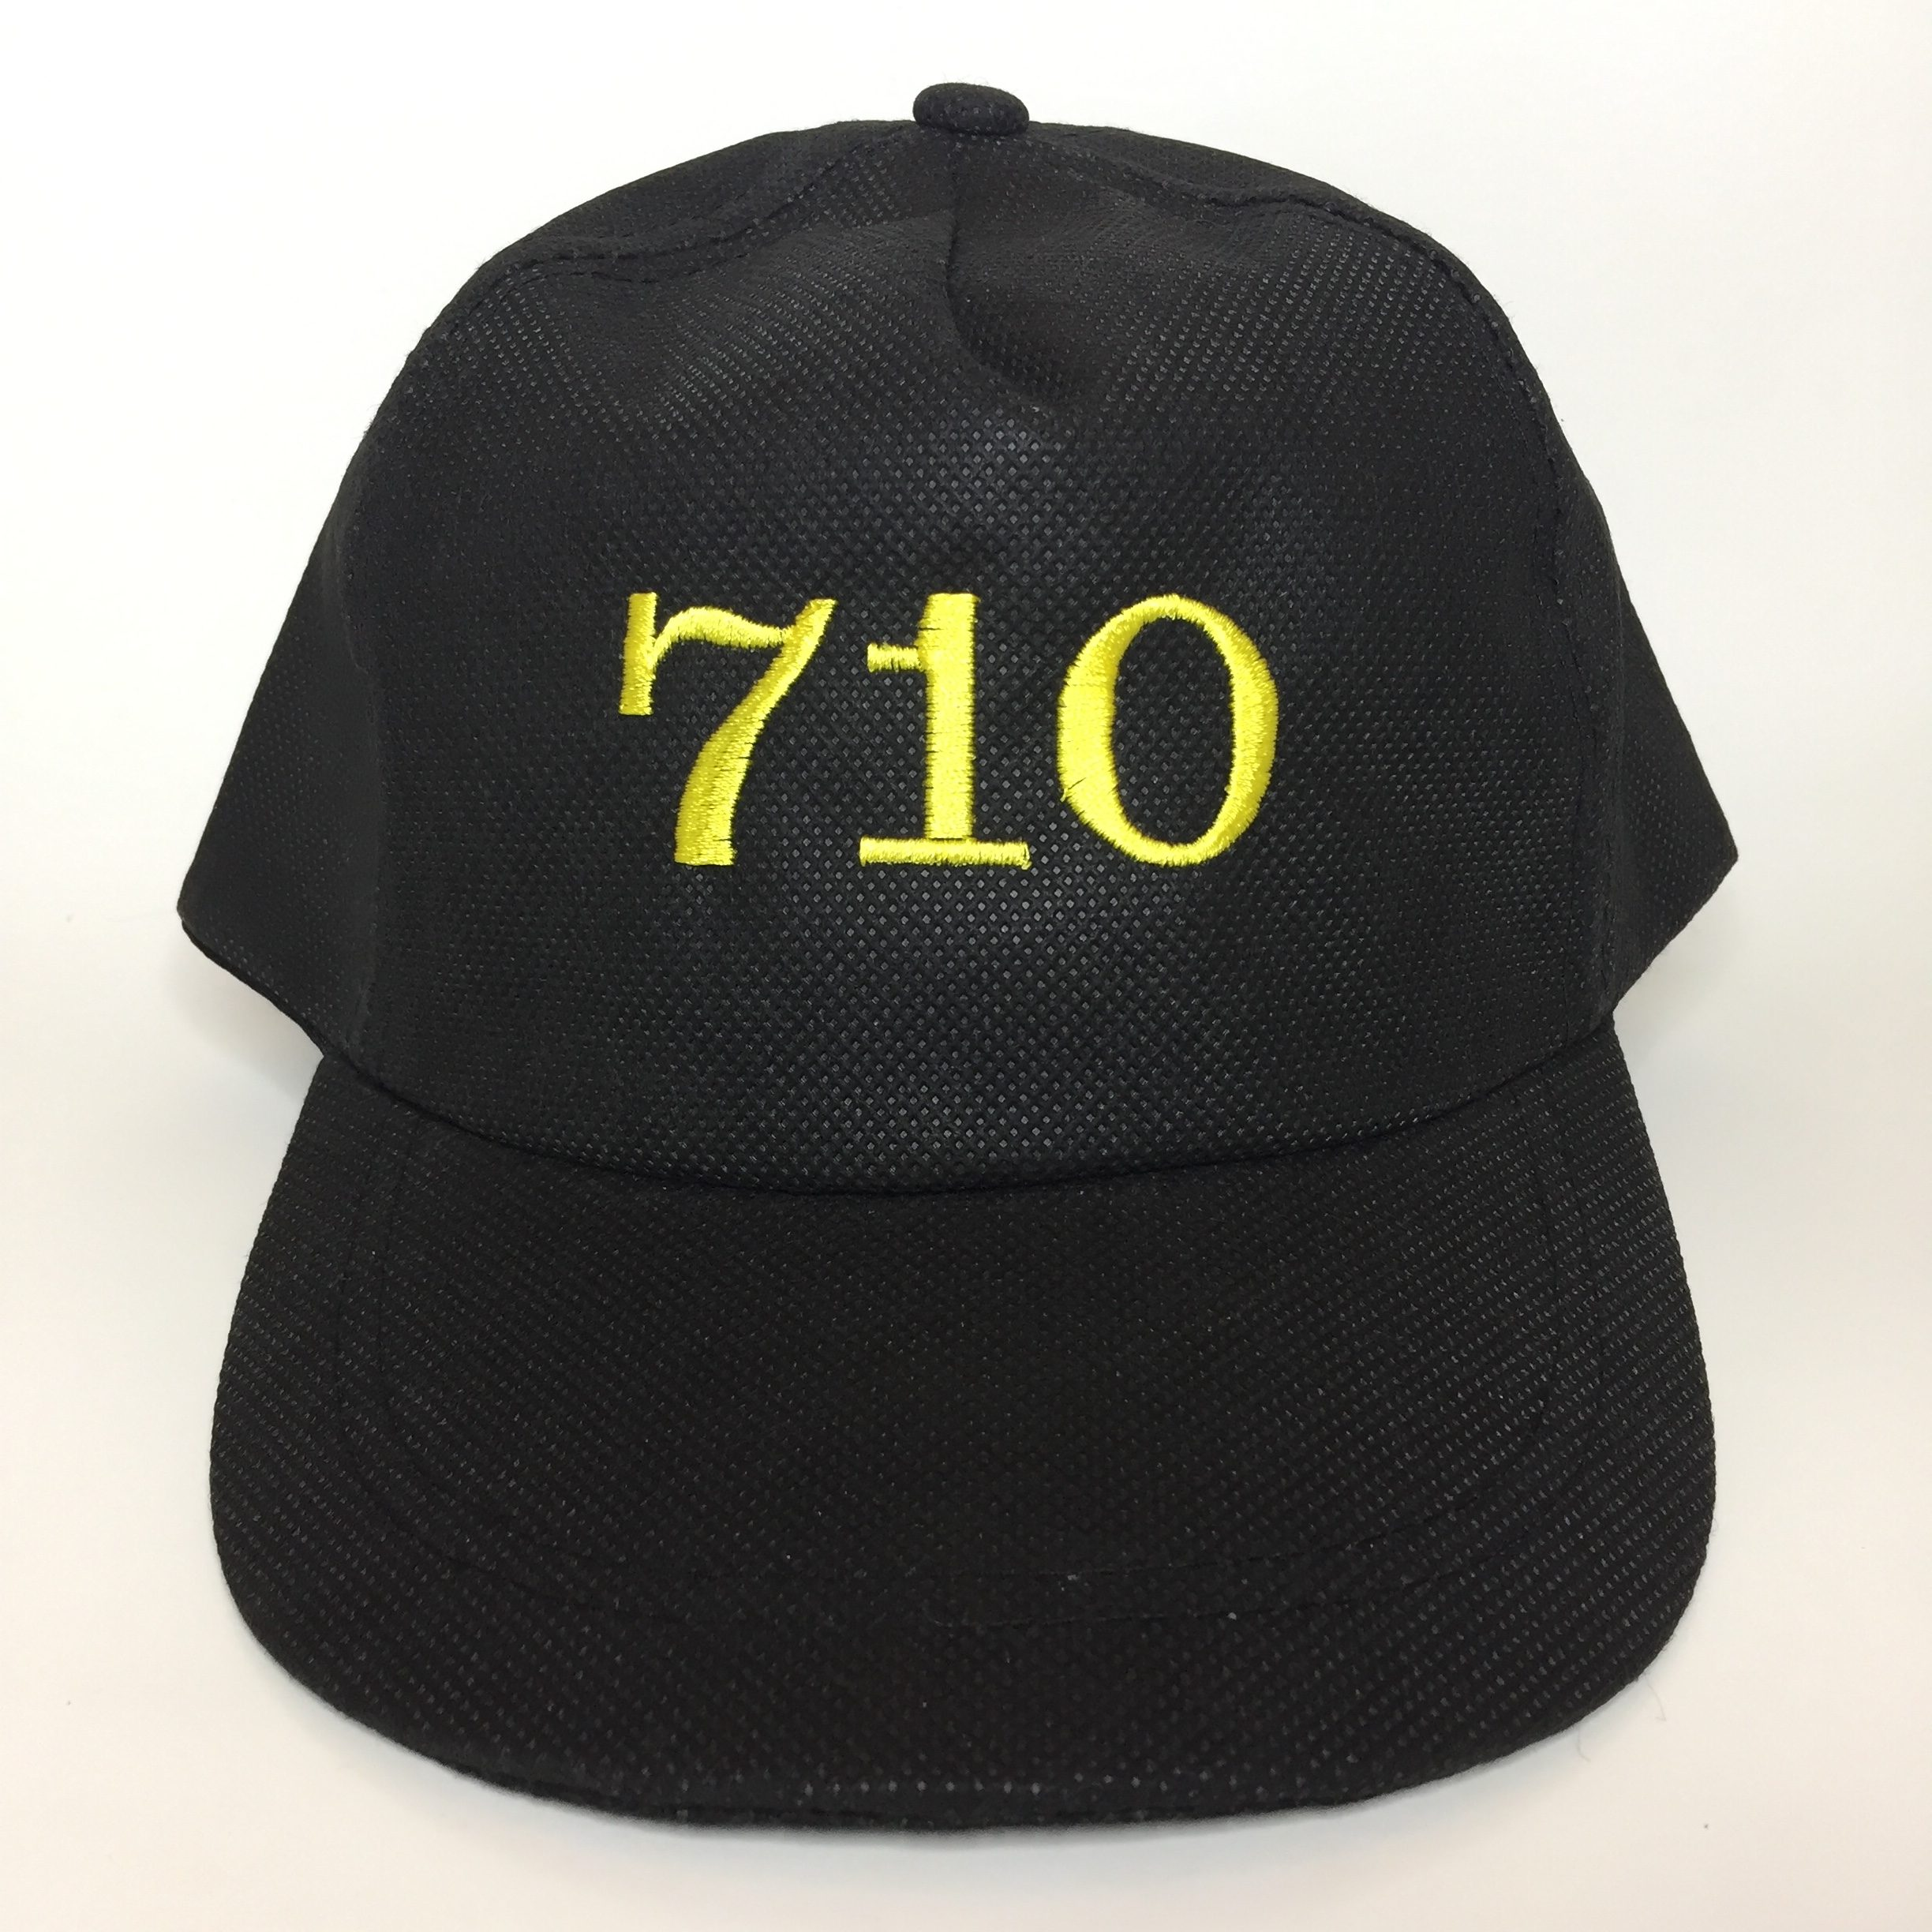 710 5 Panel Dad Hat Front View